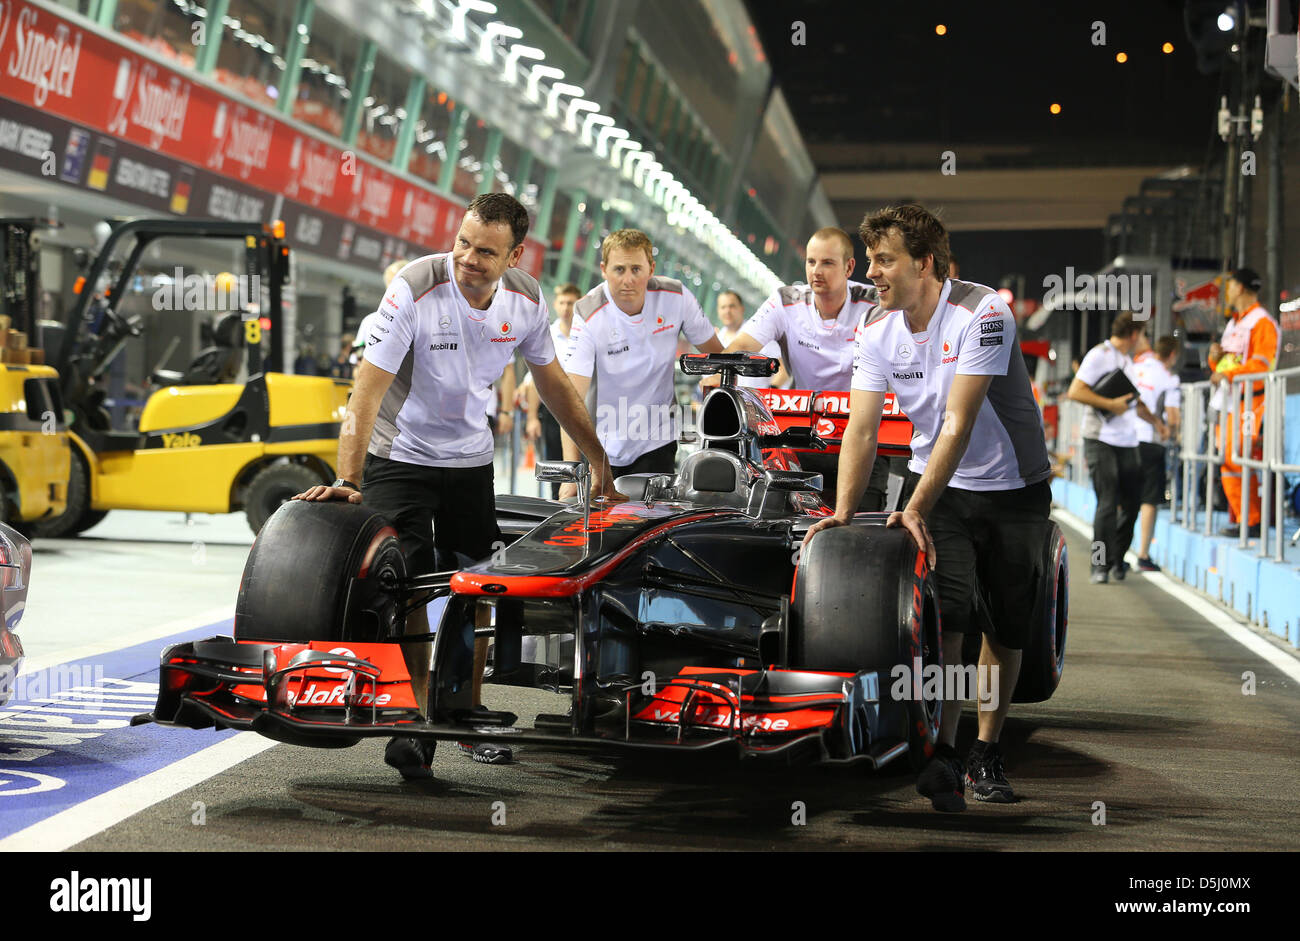 8dedd71c656 Mechanic of British Formula One driver Jenson Button of McLaren Mercedes  push the race car through